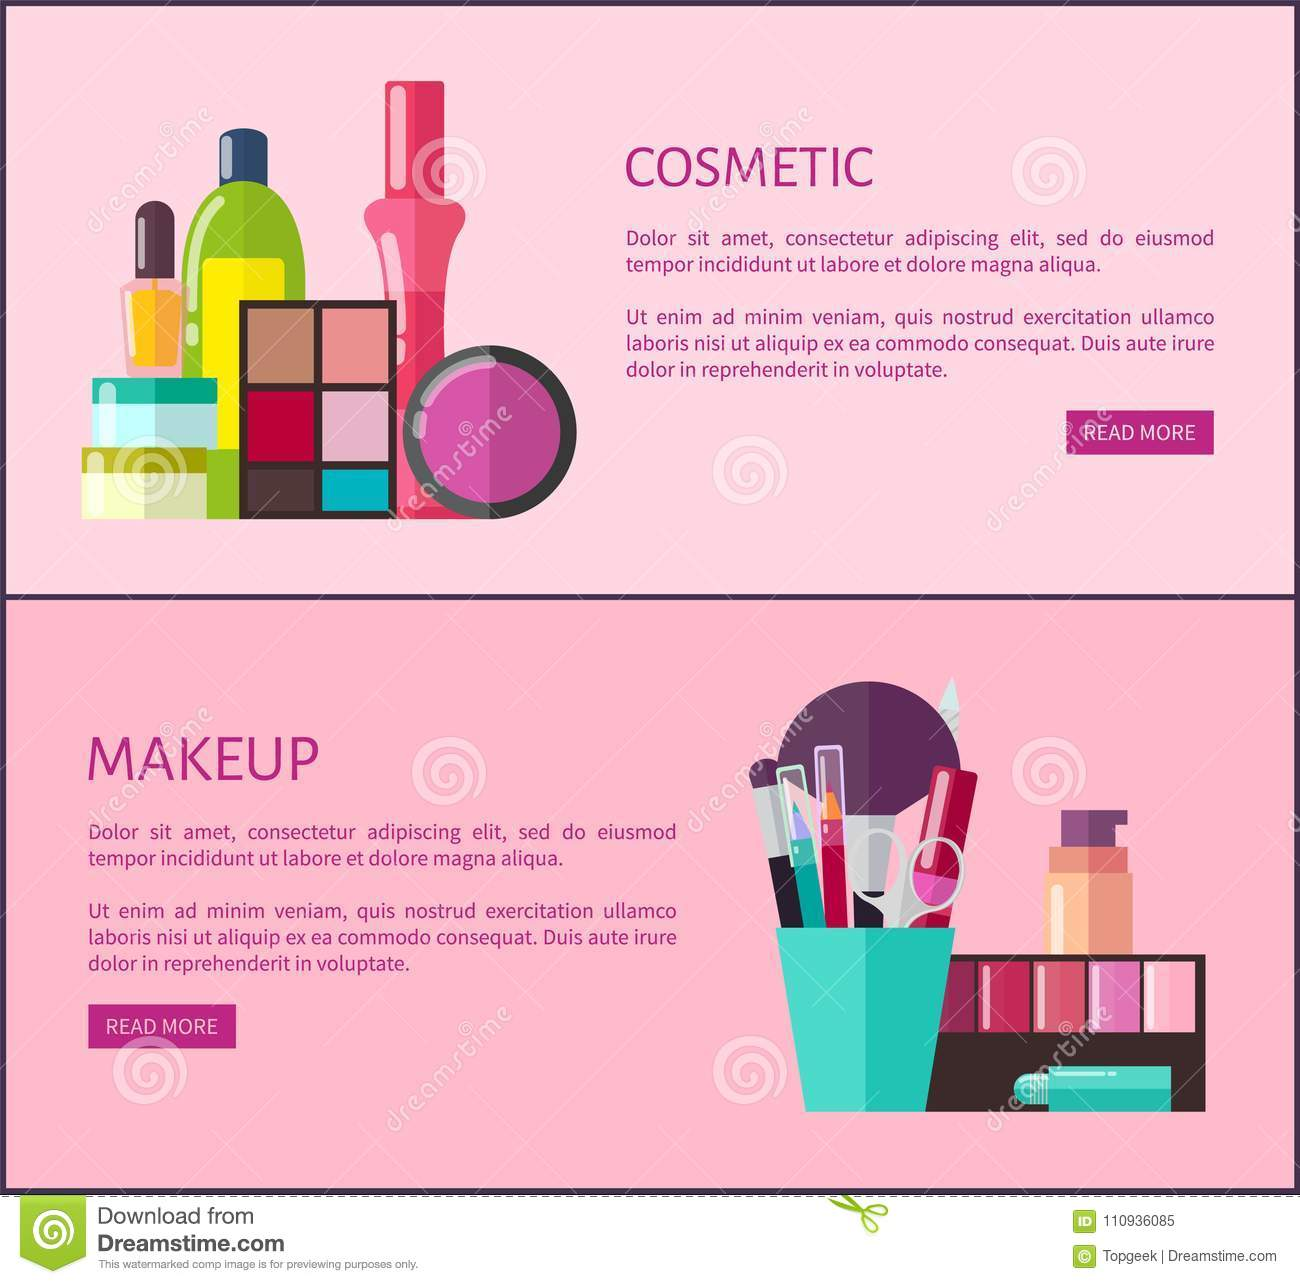 Cosmetic and makeup, set of web pages with headlines and text, cup with brushes and scissors, palette and eyeshadow, on vector illustration